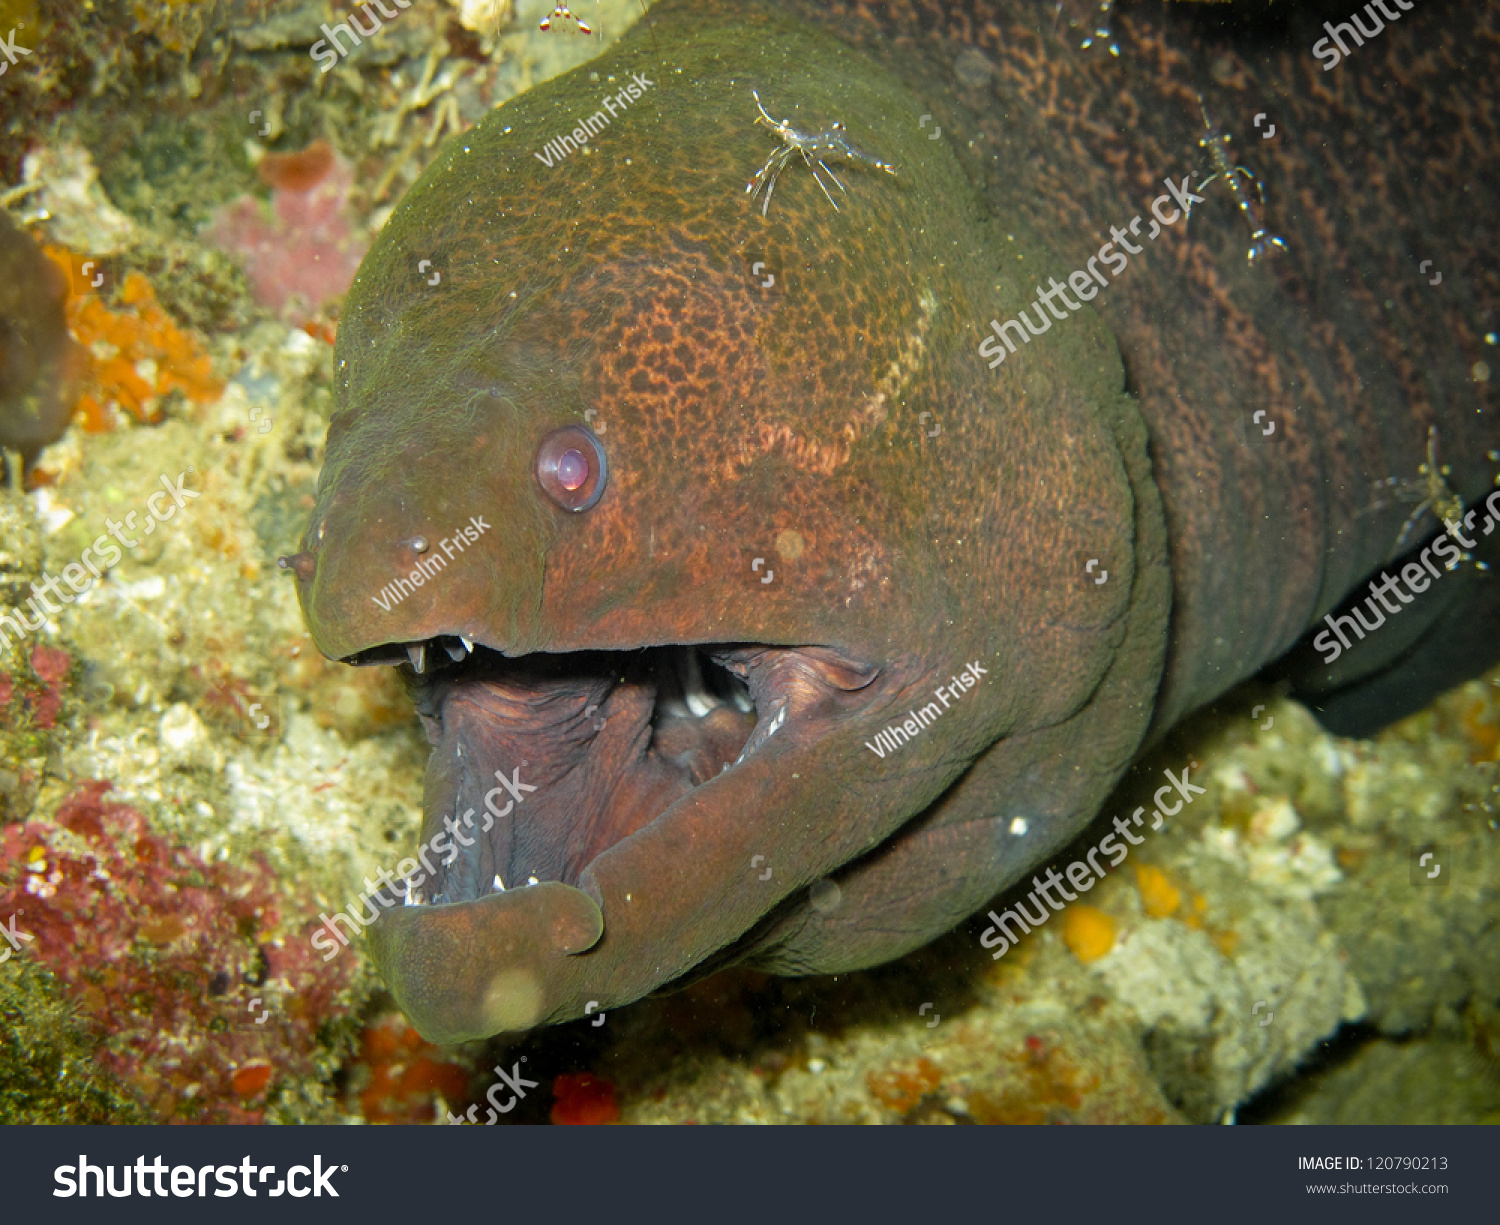 Giant Moray Eel On Coral Reef Stock Photo (Royalty Free) 120790213 ...